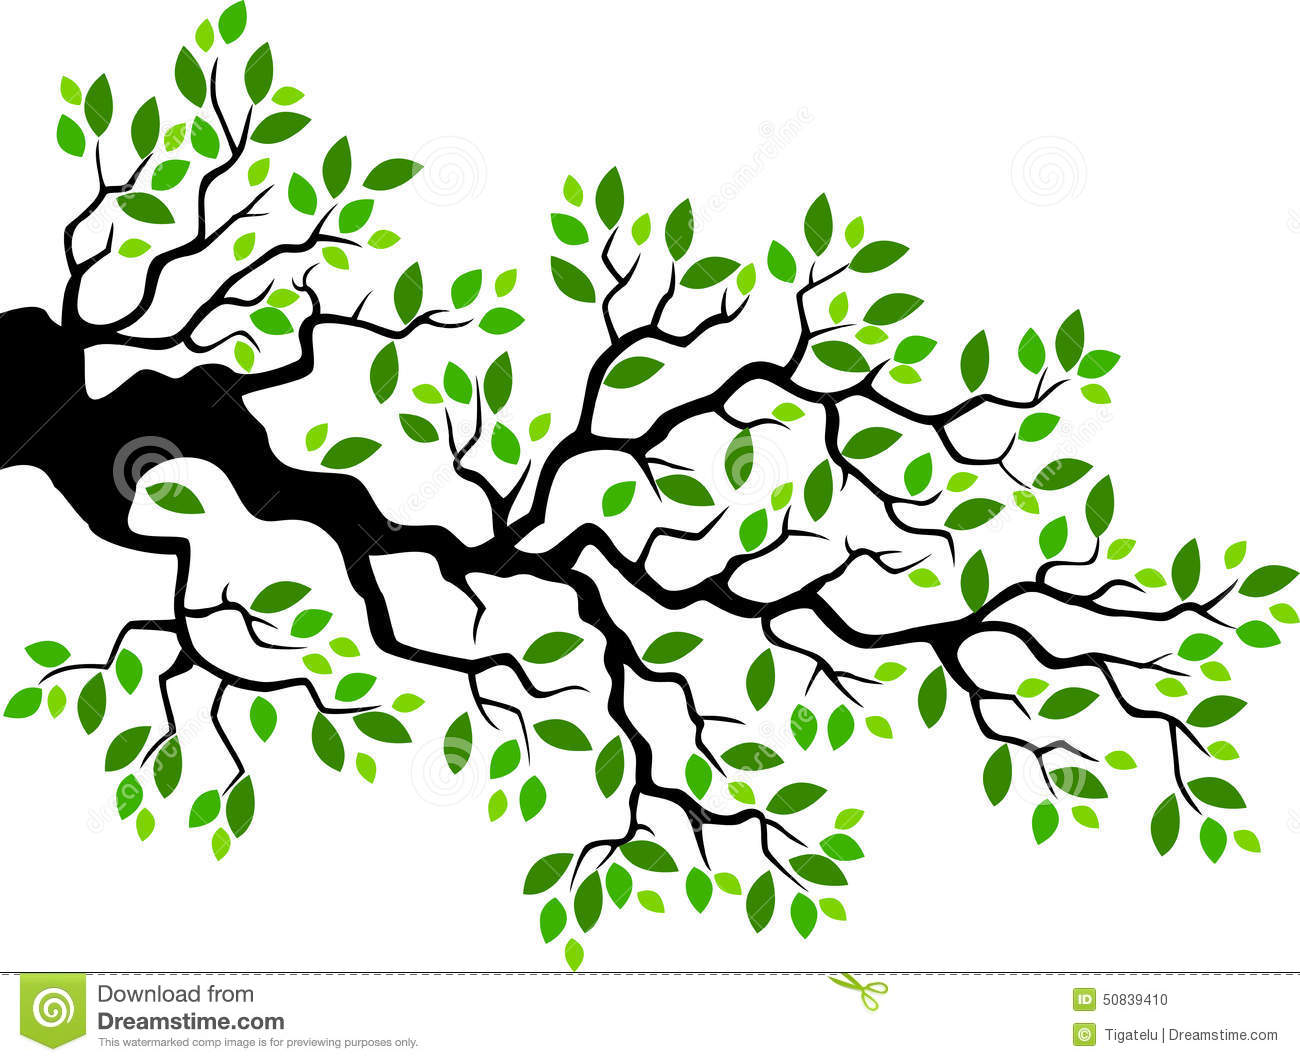 Green Leaf Tree Branch Cartoon Stock Vector - Image: 50839410 Cartoon Fall Tree With Branches